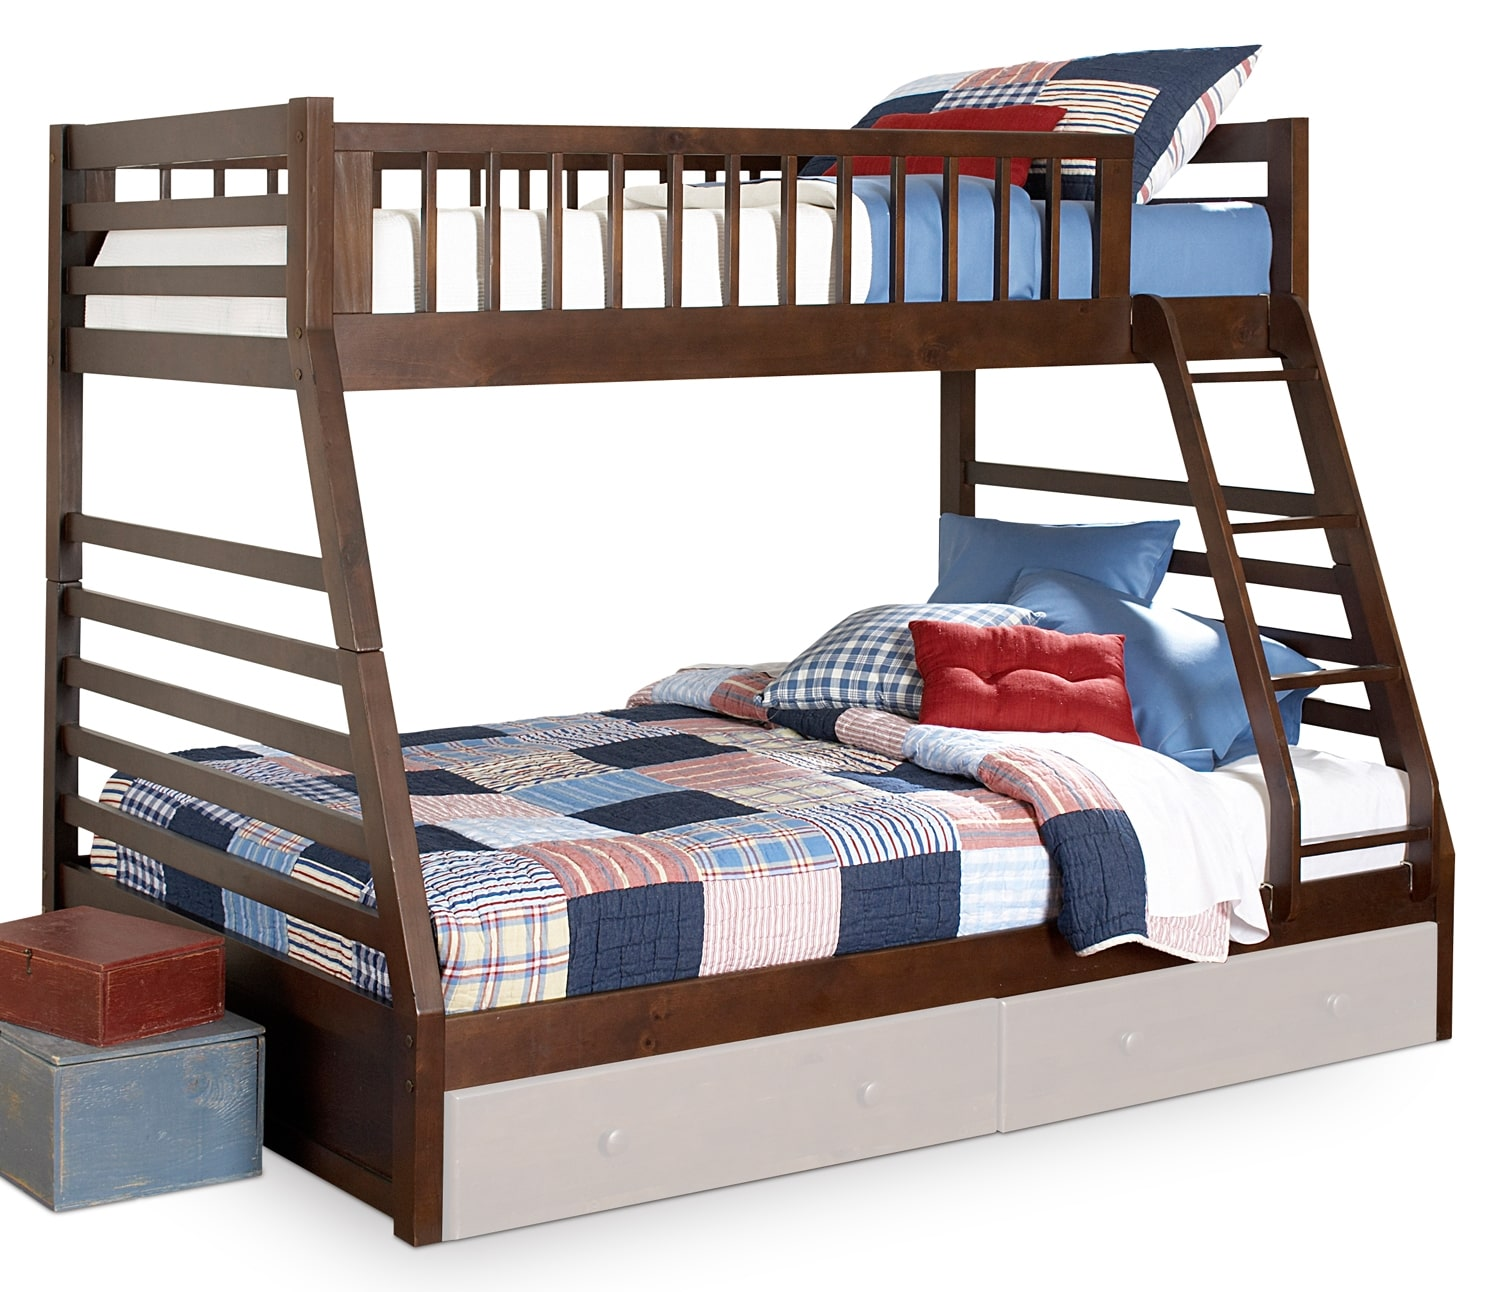 starship bunk bed set